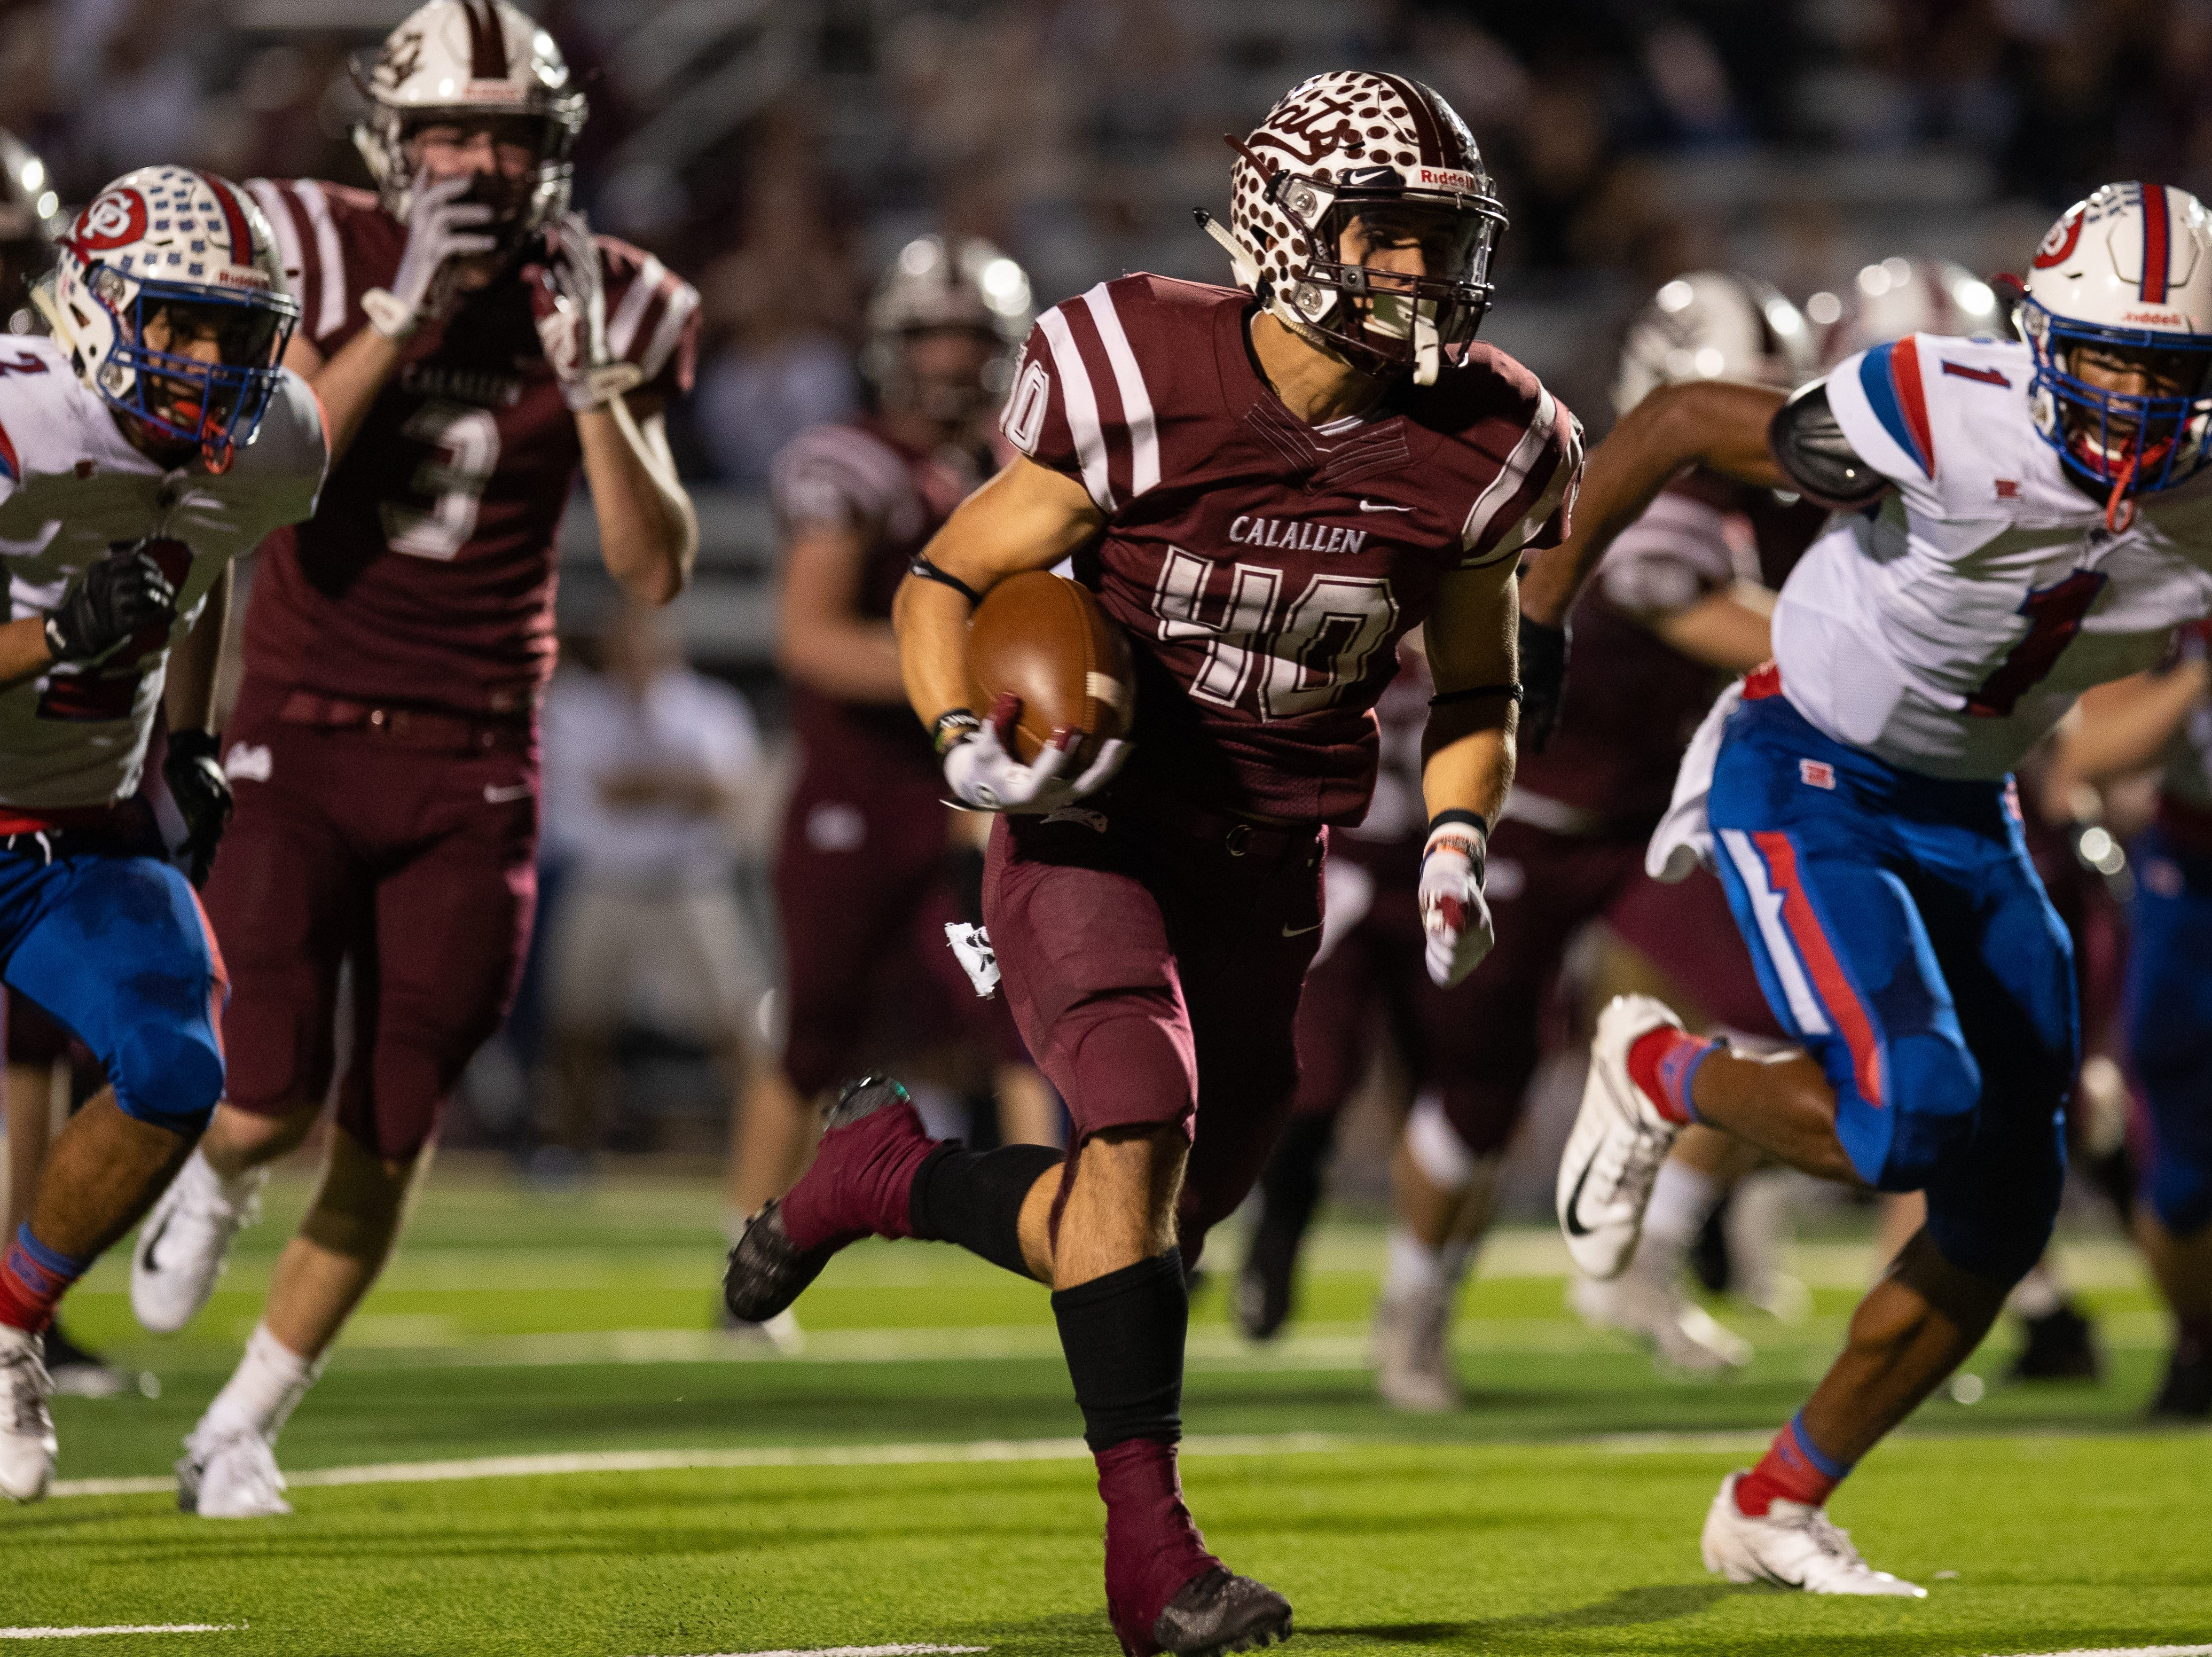 Calallen's AJ Brown runs the ball for a touchdown during the first half of their game against Gregory-Portland at Wildcat Stadium on Friday, Ict. 26, 2018.